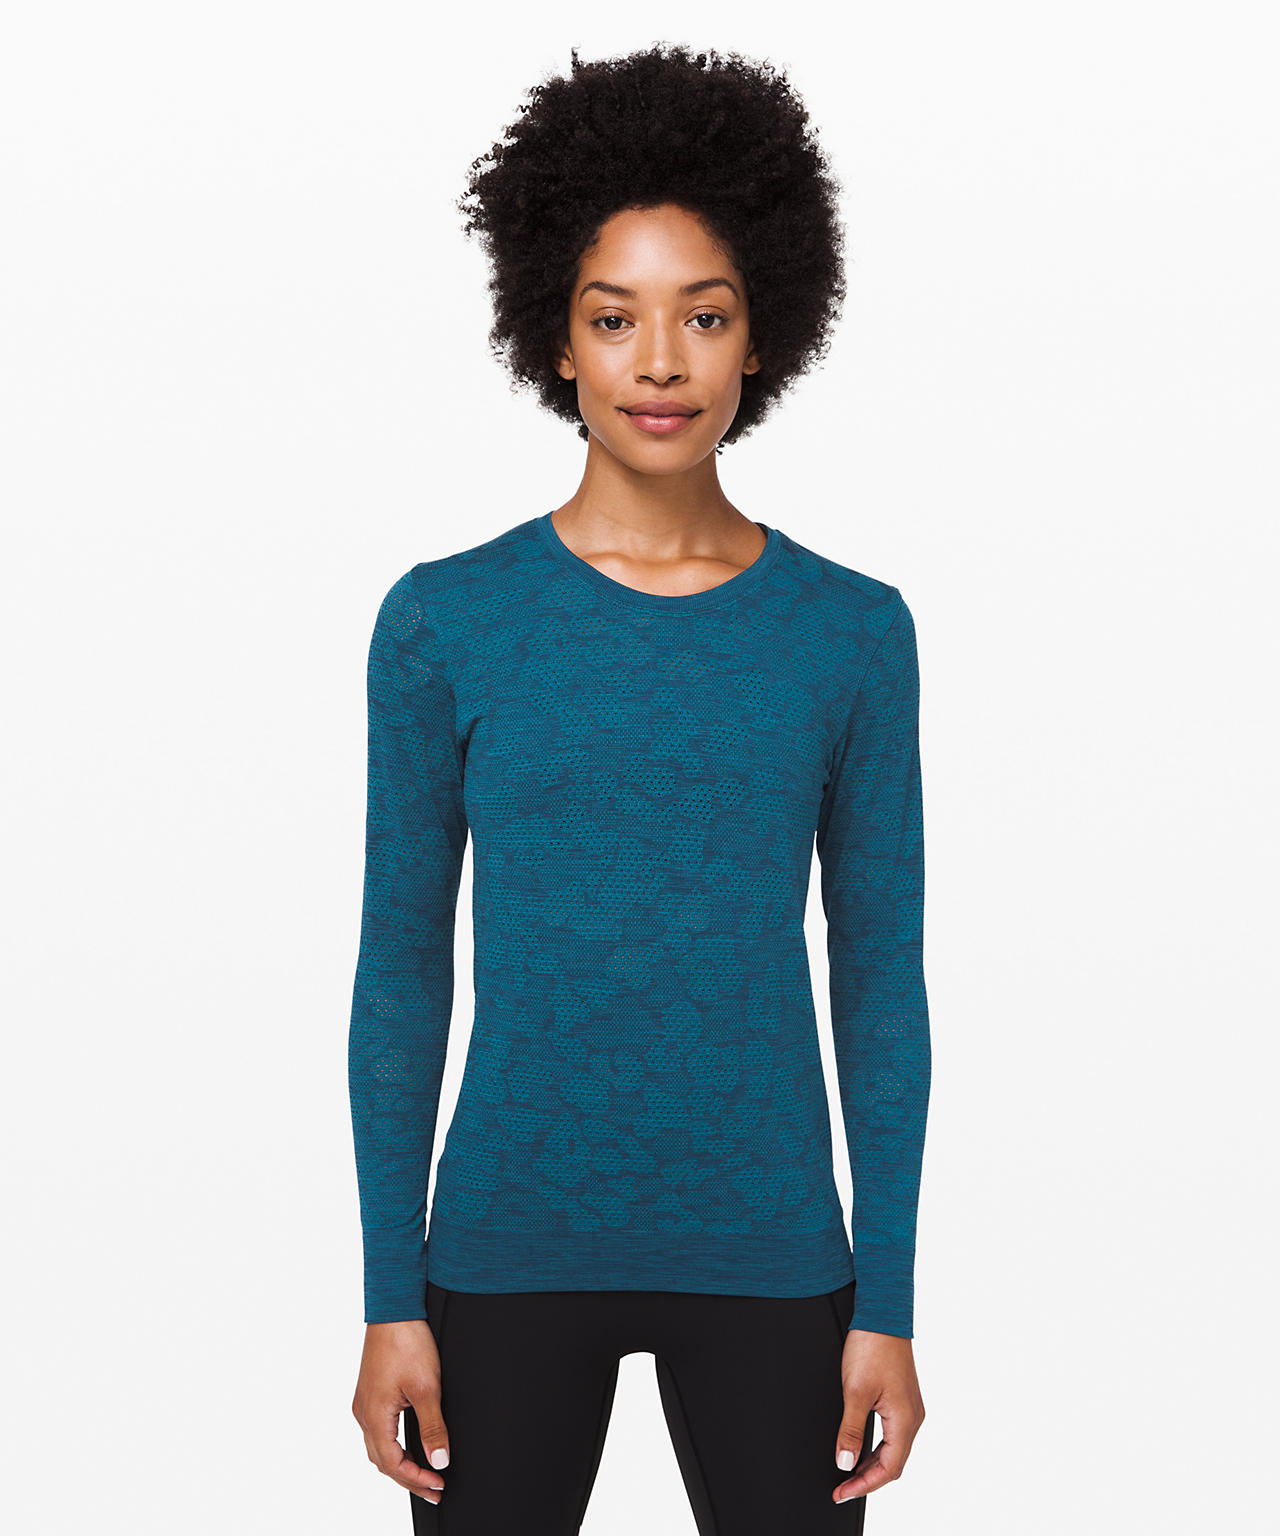 Breeze By Long Sleeve, Lululemon Upload